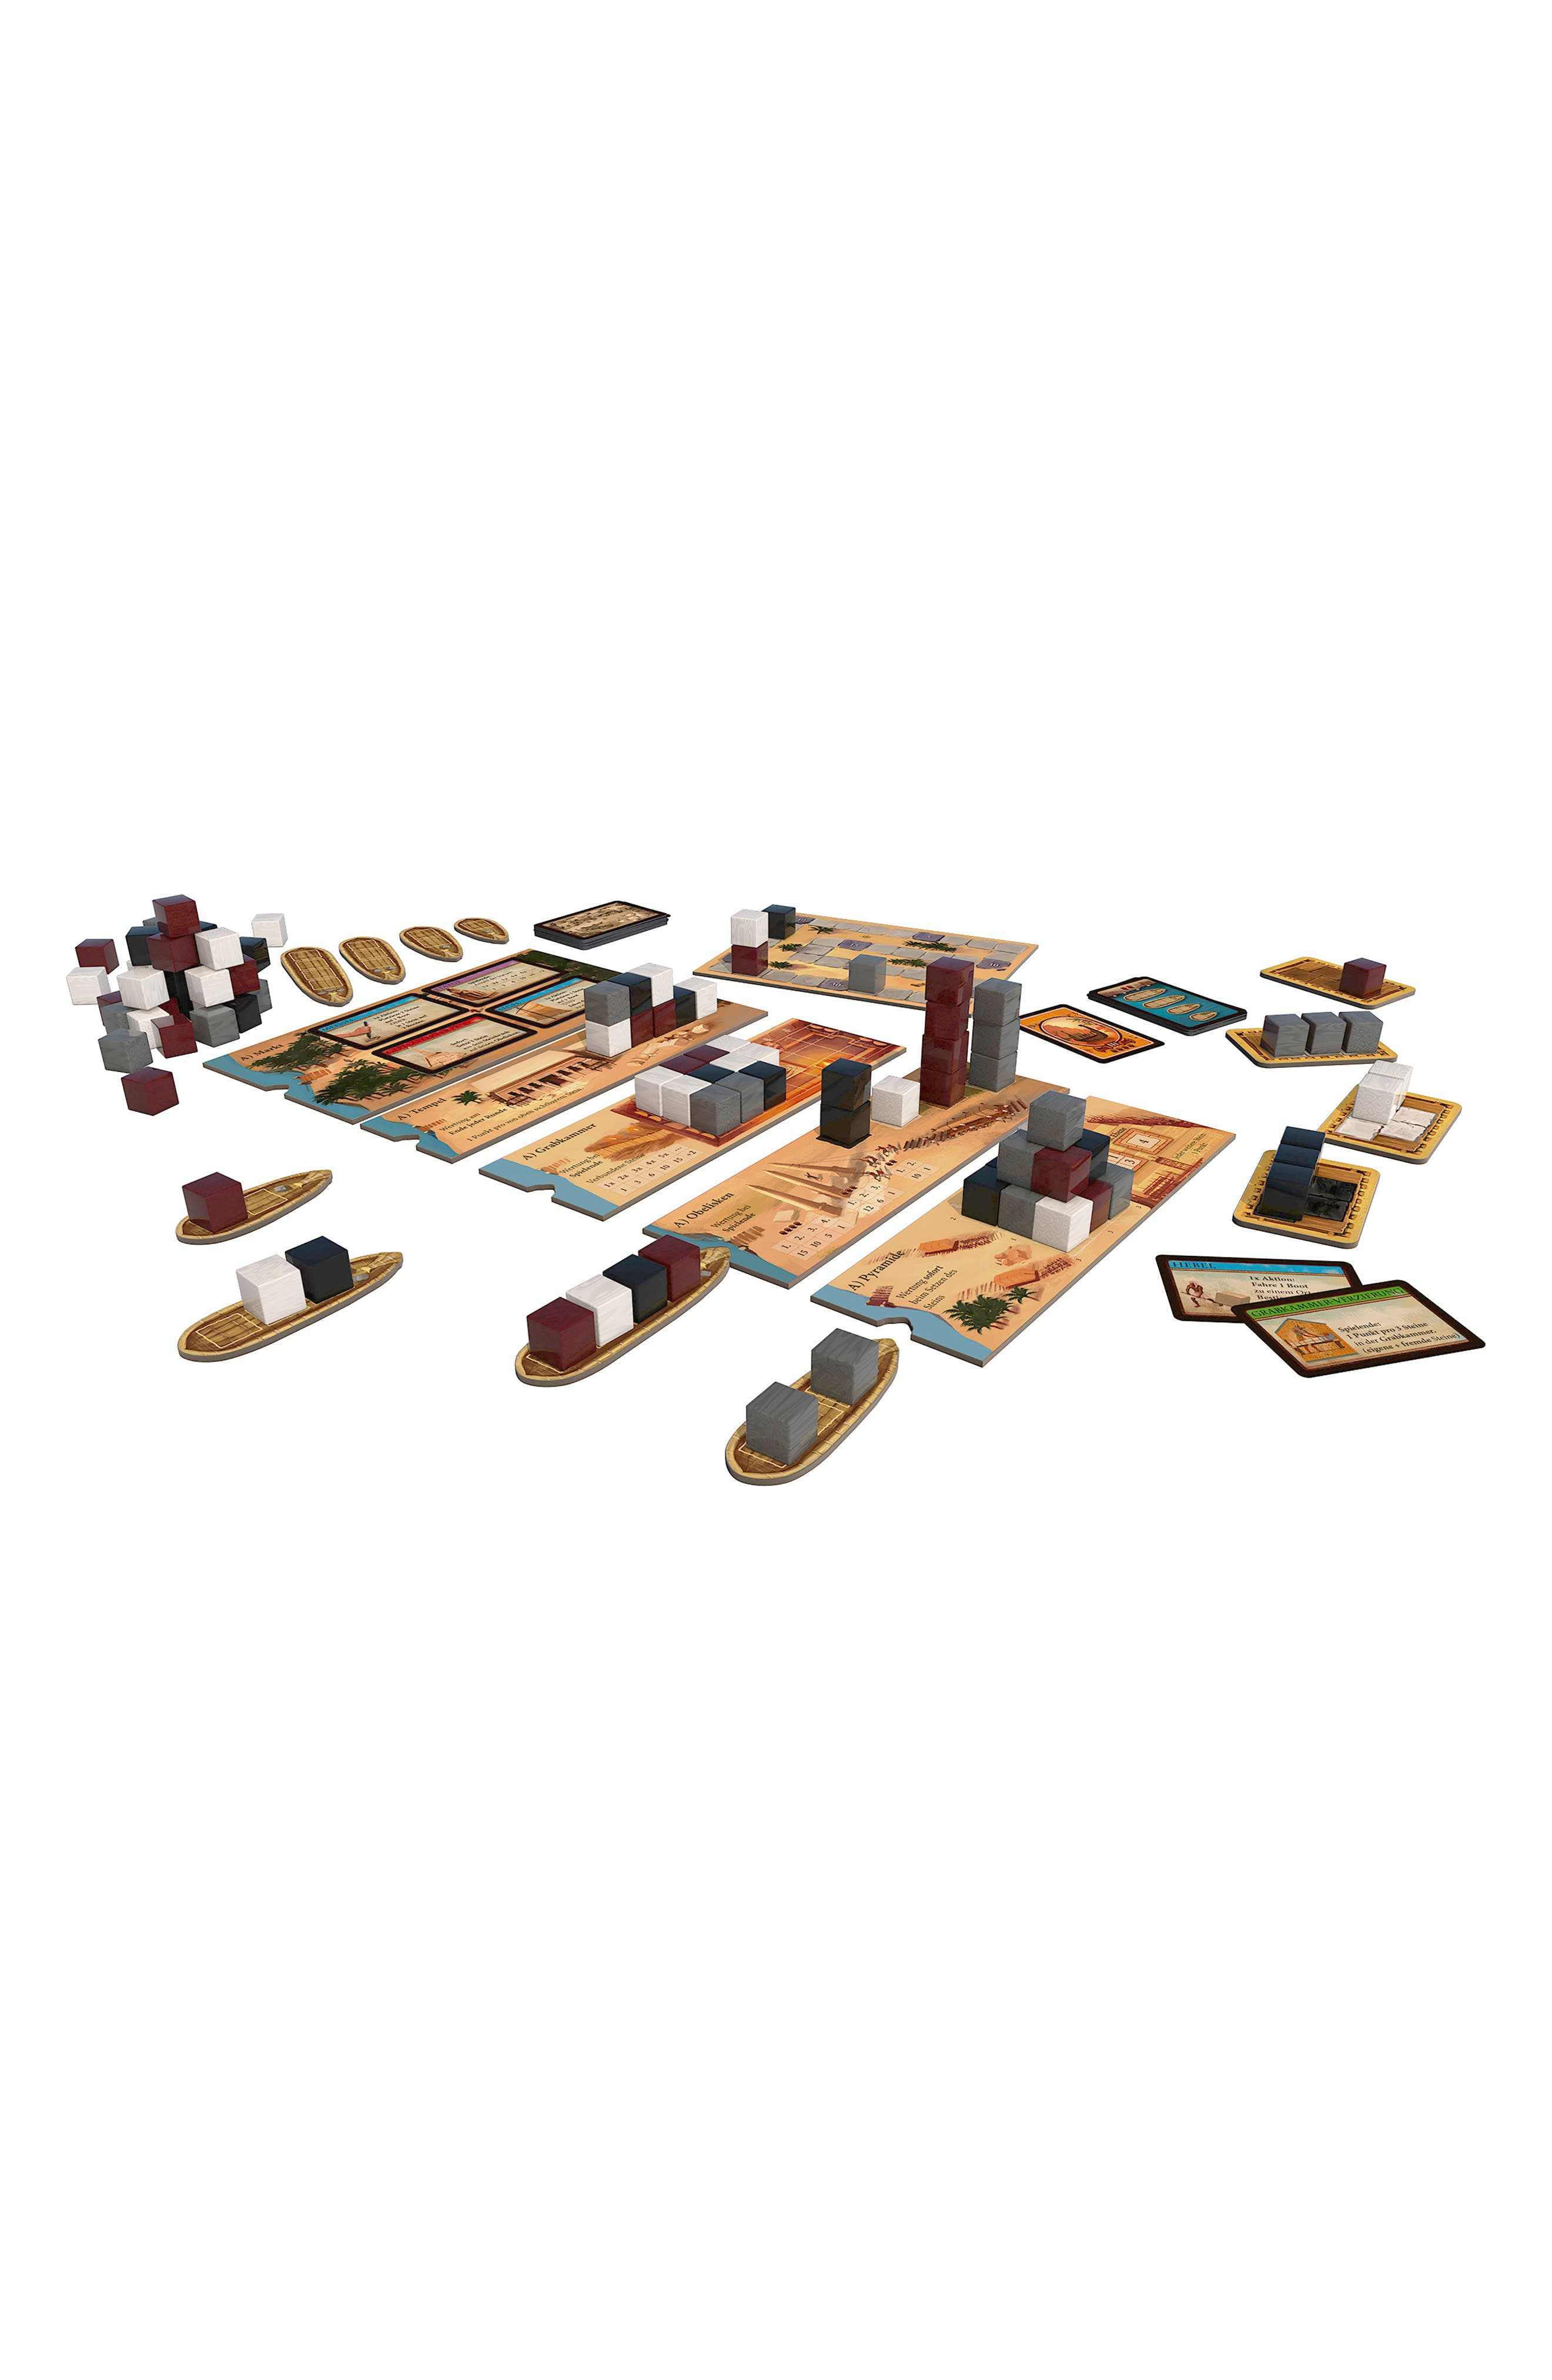 Imhotep - Builder of Egypt Board Game,                             Alternate thumbnail 3, color,                             NO COLOR